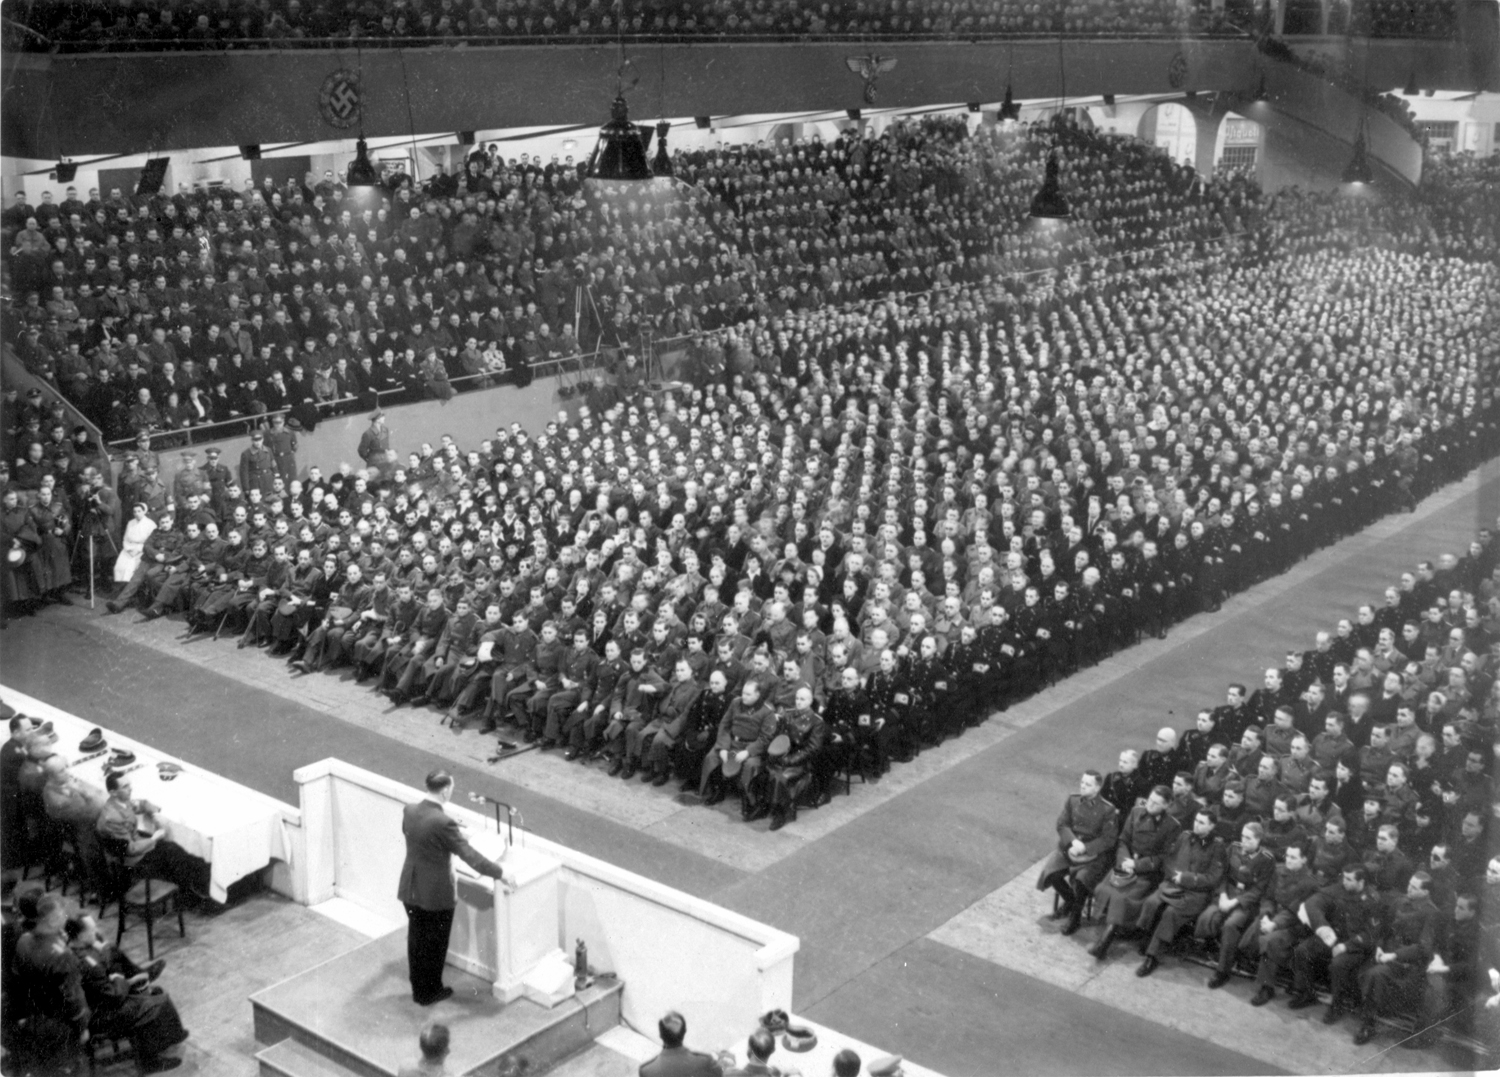 Adolf Hitler gives a speech in Berlin's Sportspalast in front of officers, from Eva Braun's albums